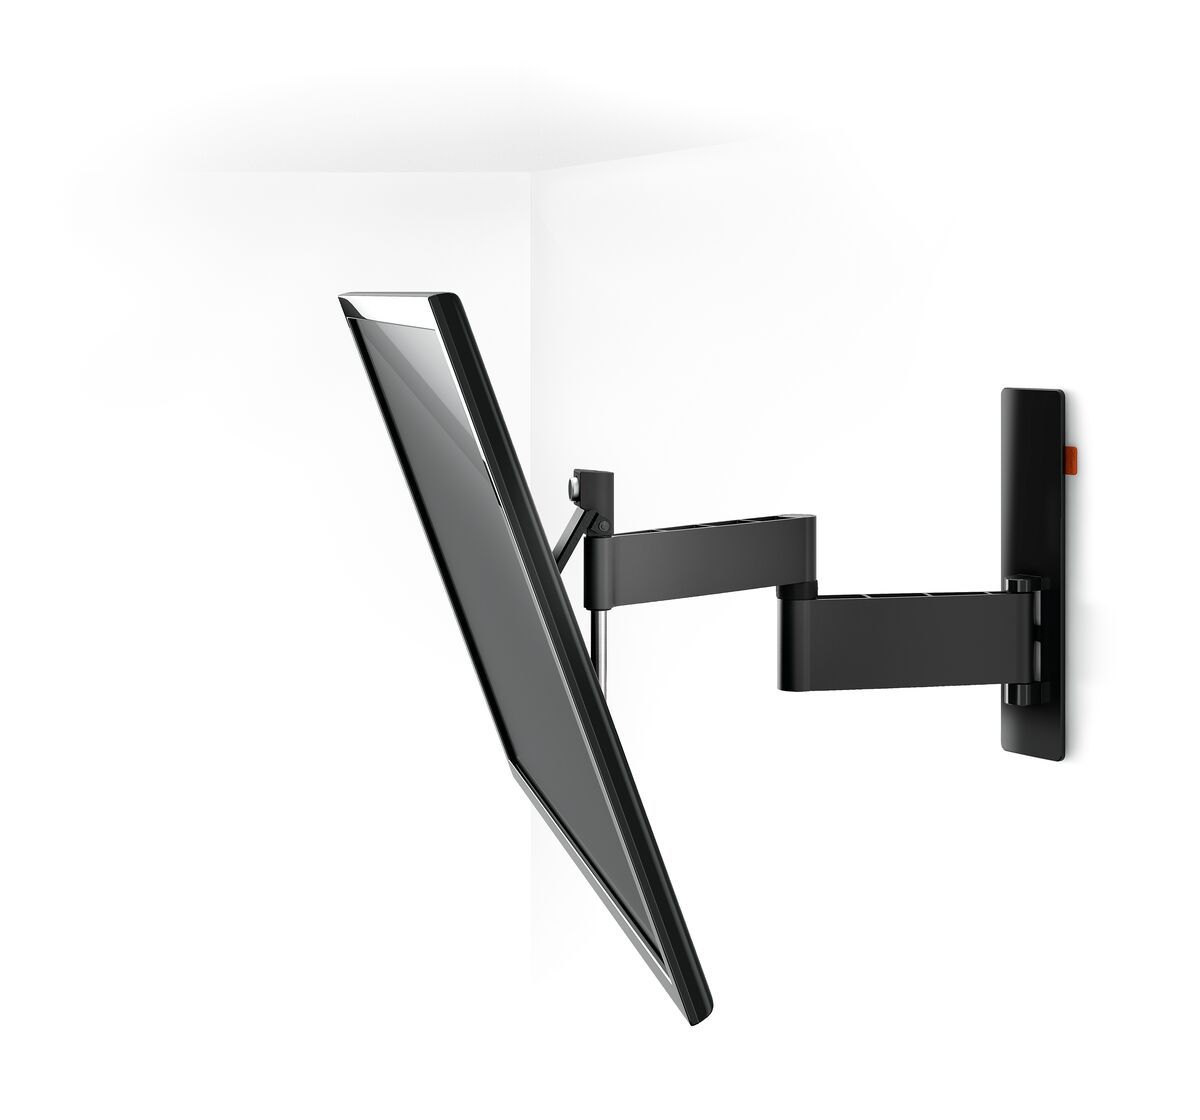 Vogel's WALL 2345 Full-Motion TV Wall Mount (black) - Suitable for 40 up to 65 inch TVs - Full motion (up to 180°) - Tilt up to 20° - White wall